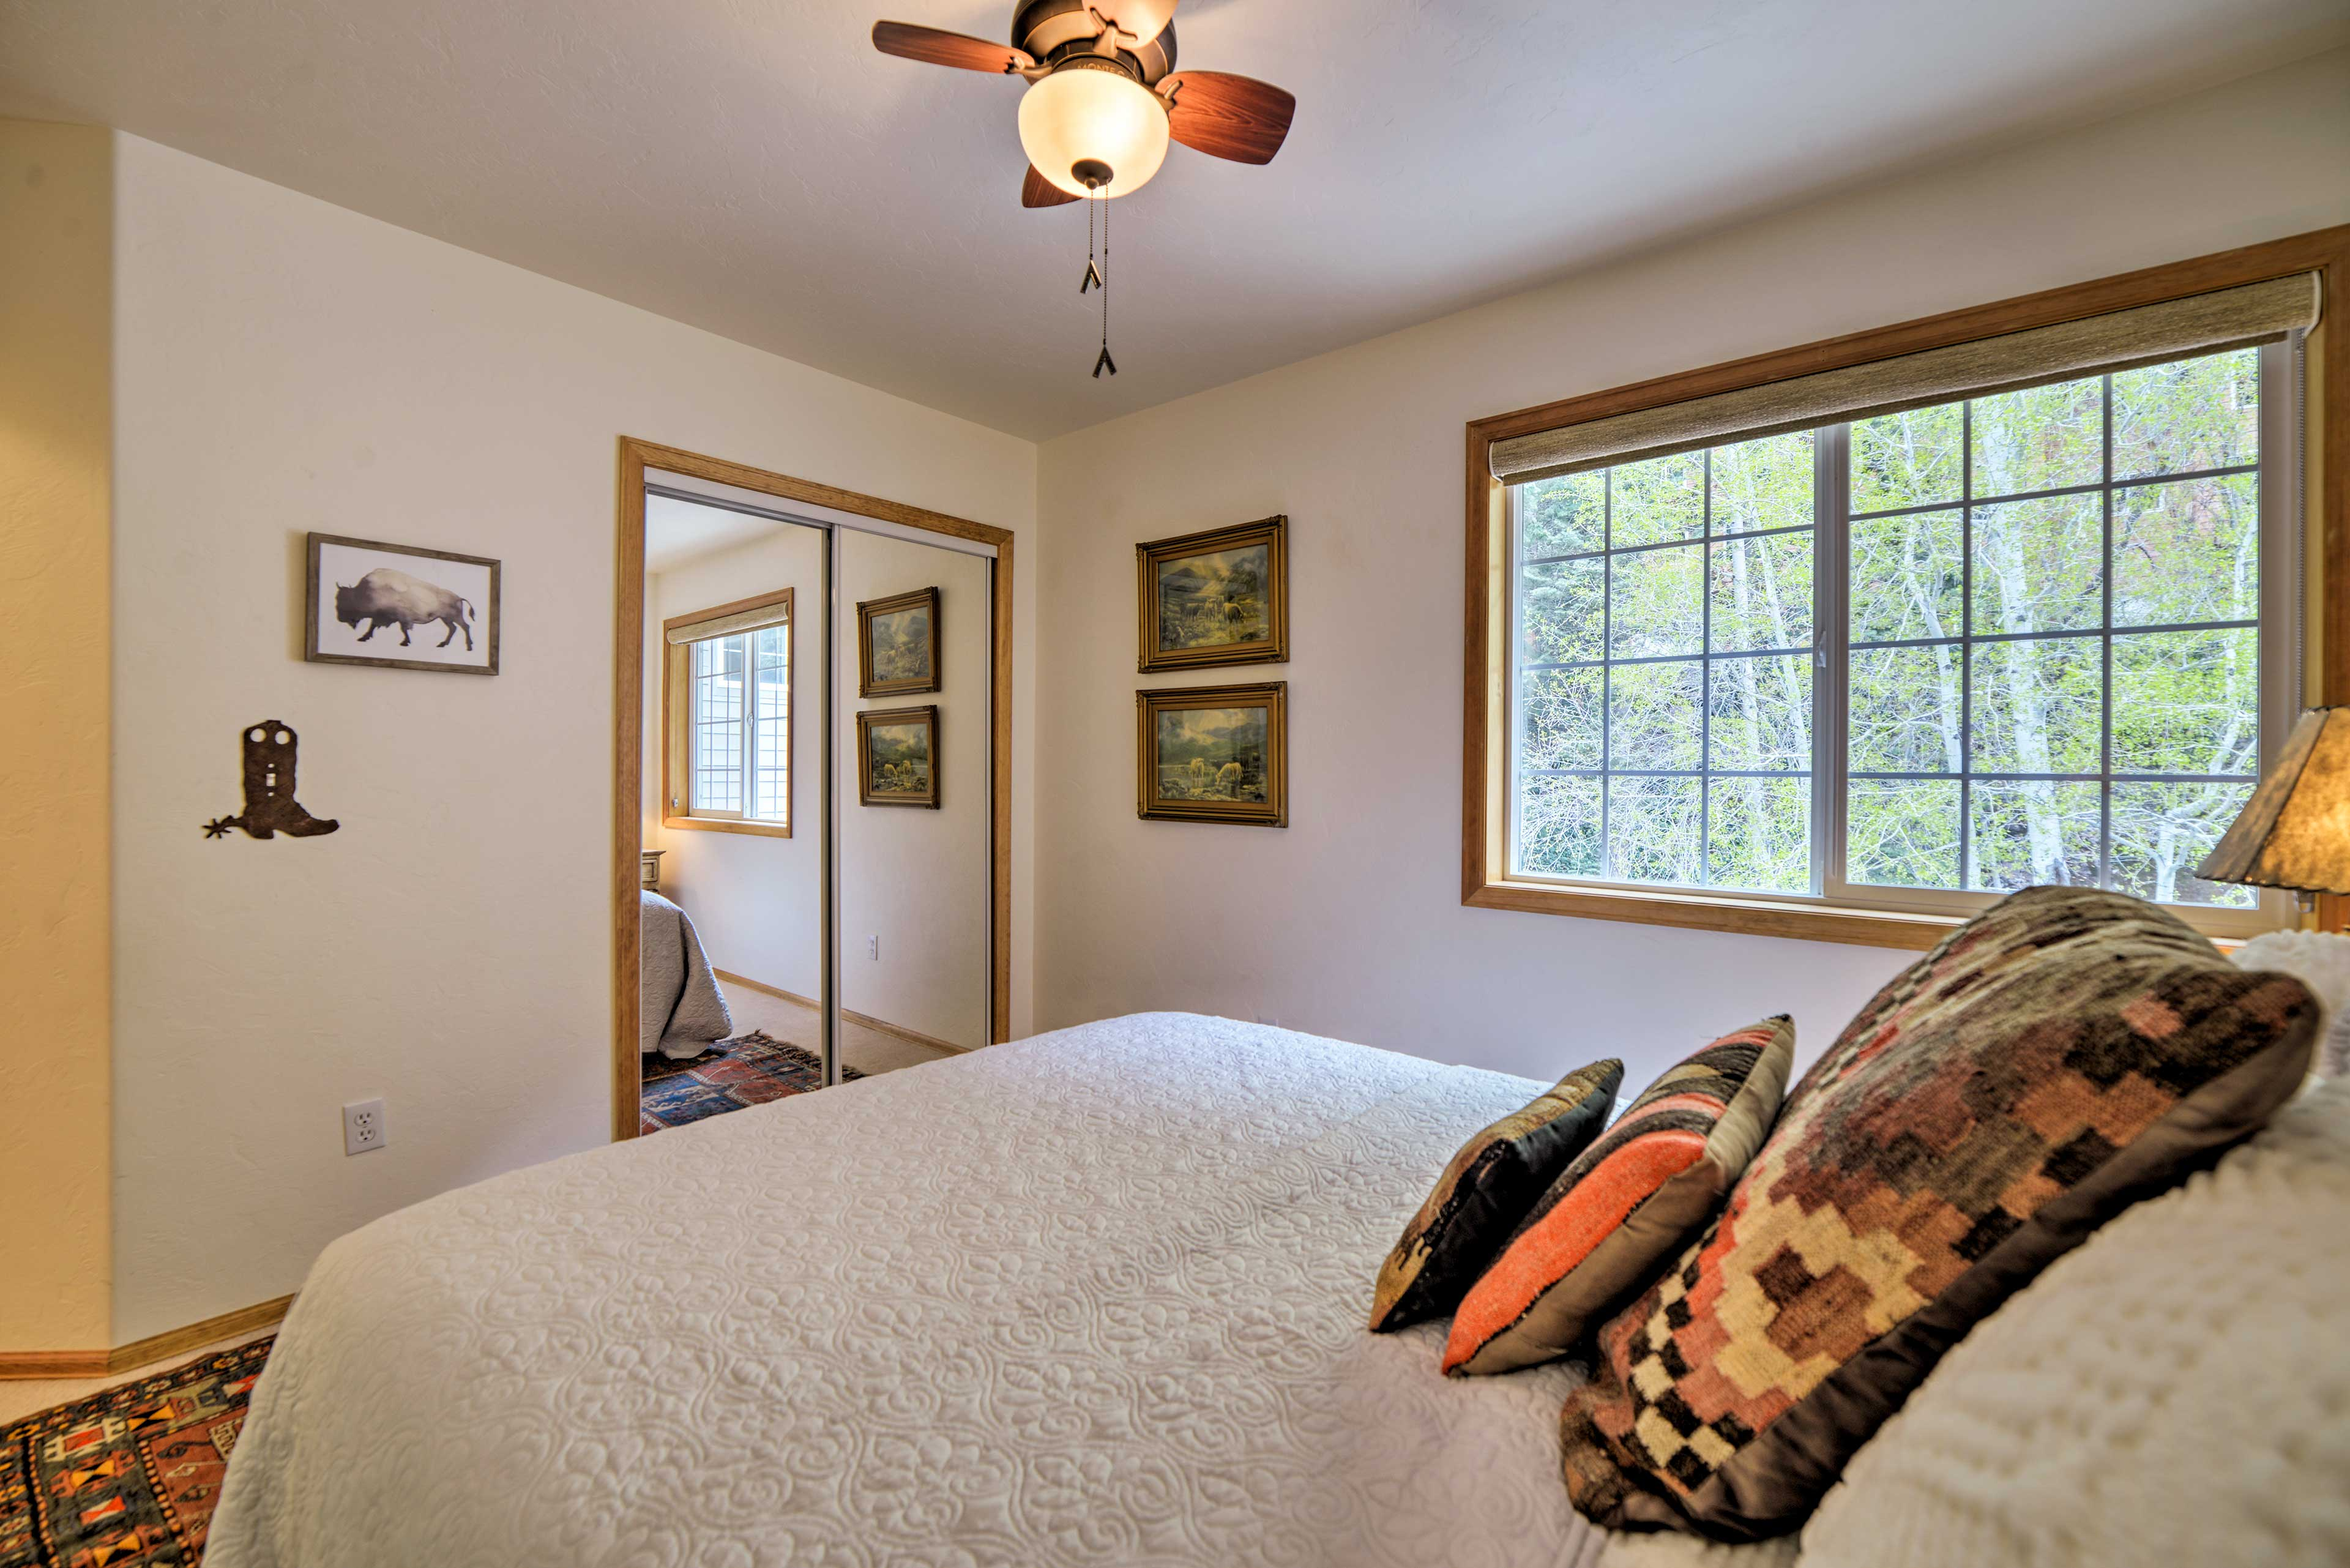 Open the window to let in the fresh mountain air!